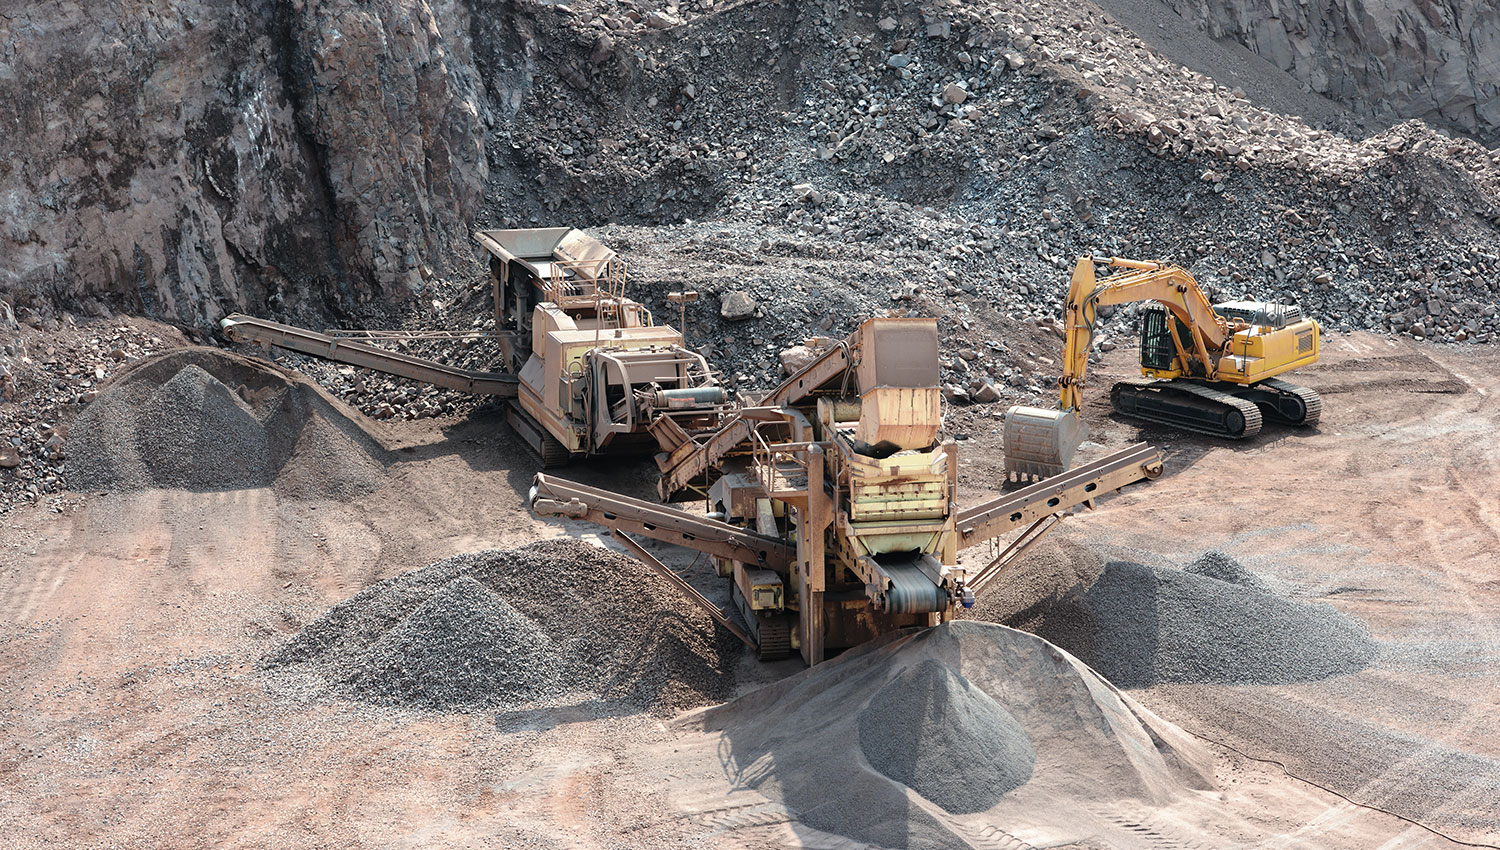 The Main Role of Safety and Security Systems in the Mining Industry